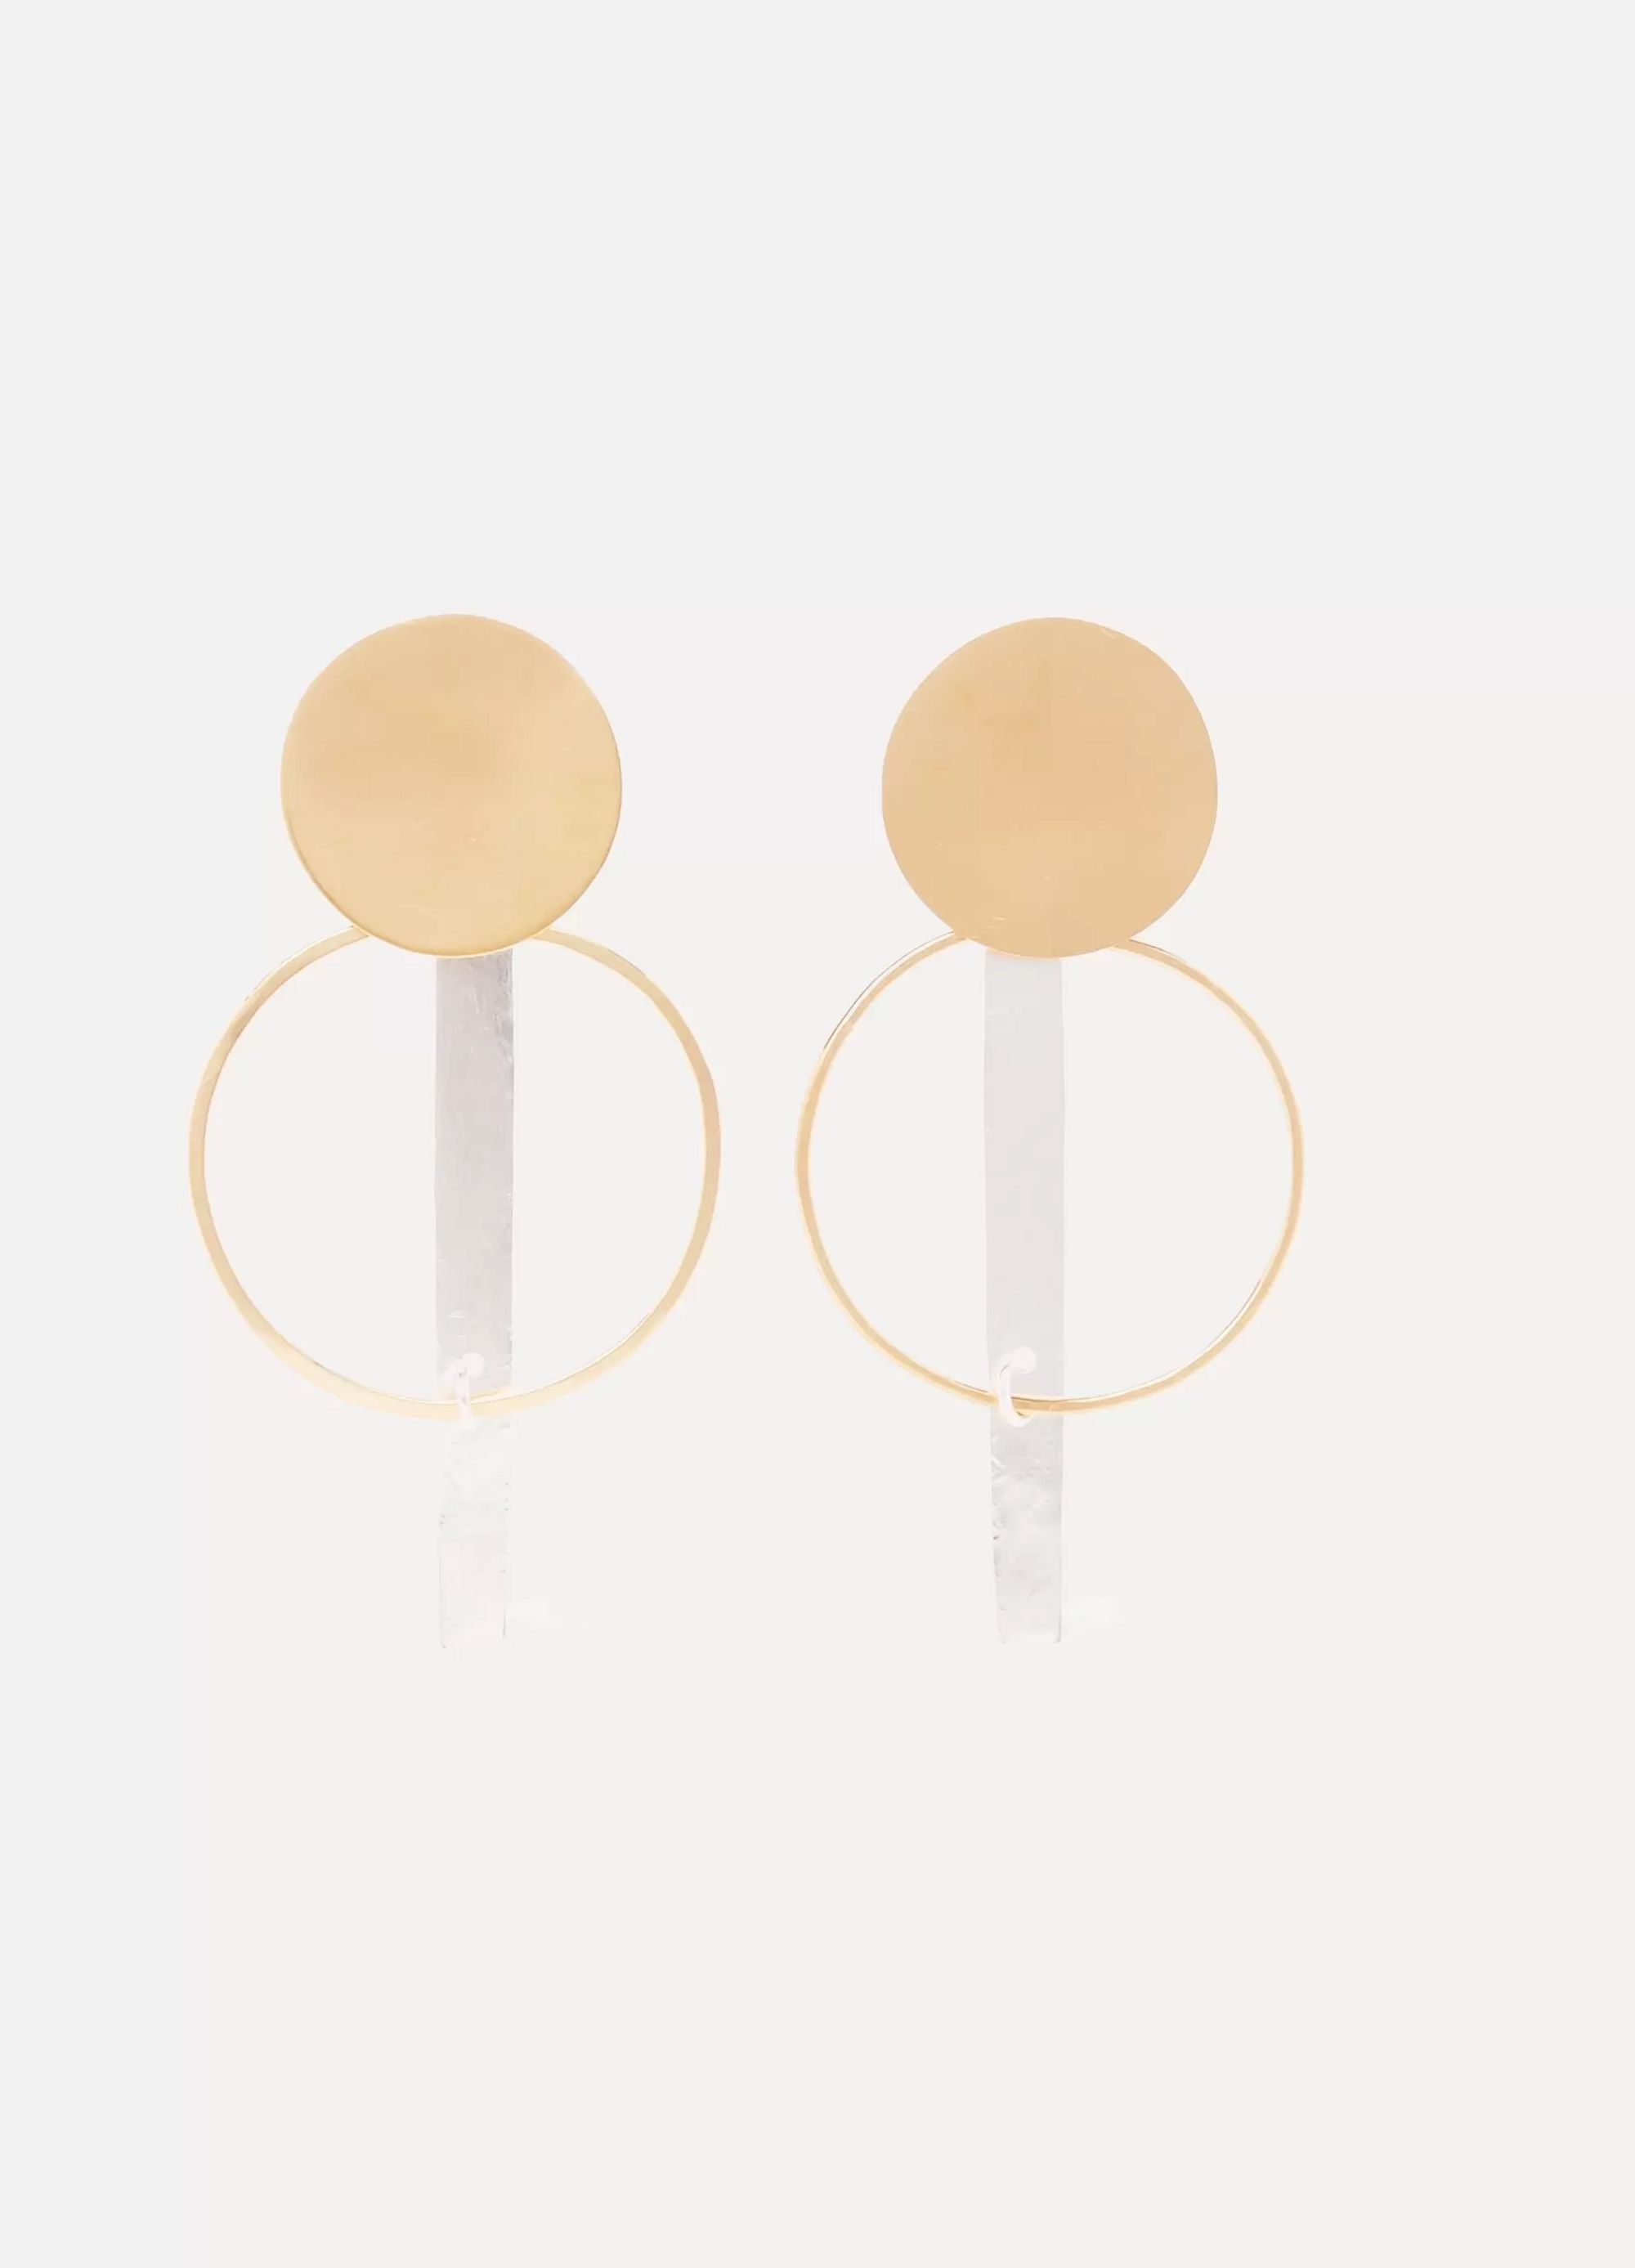 Annie Costello Brown Krikol gold and silver-tone earrings